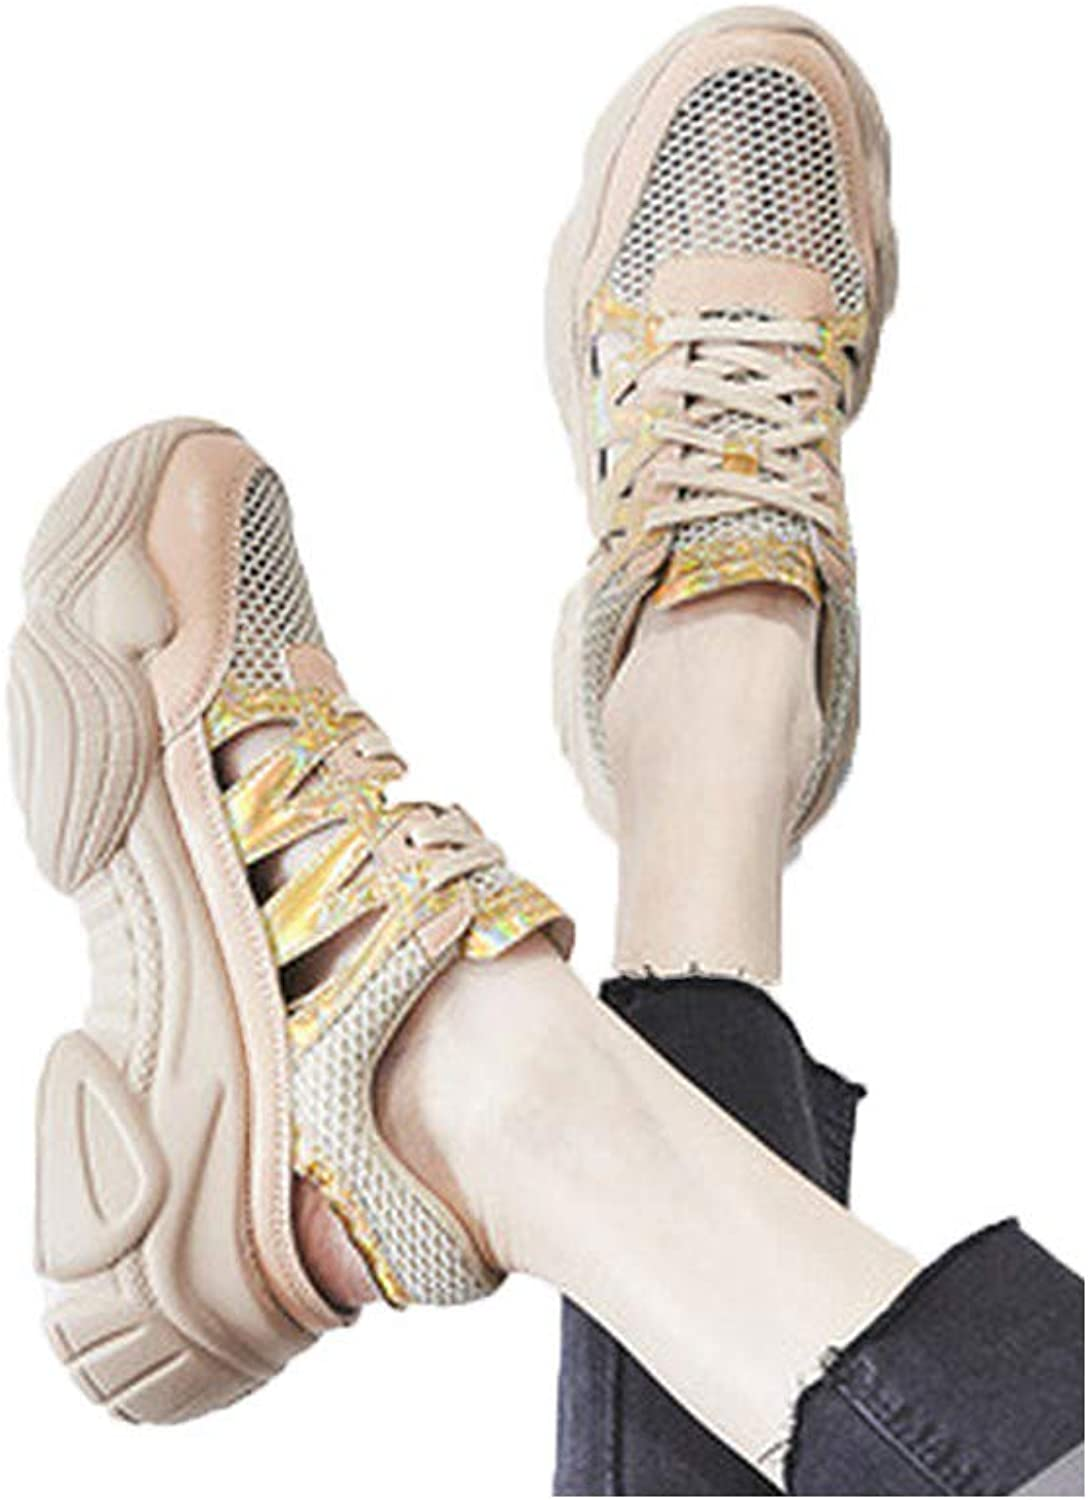 KUUI Sneakers for Women - Sneakers Lace Up shoes, Best for Casual and Daily Wear